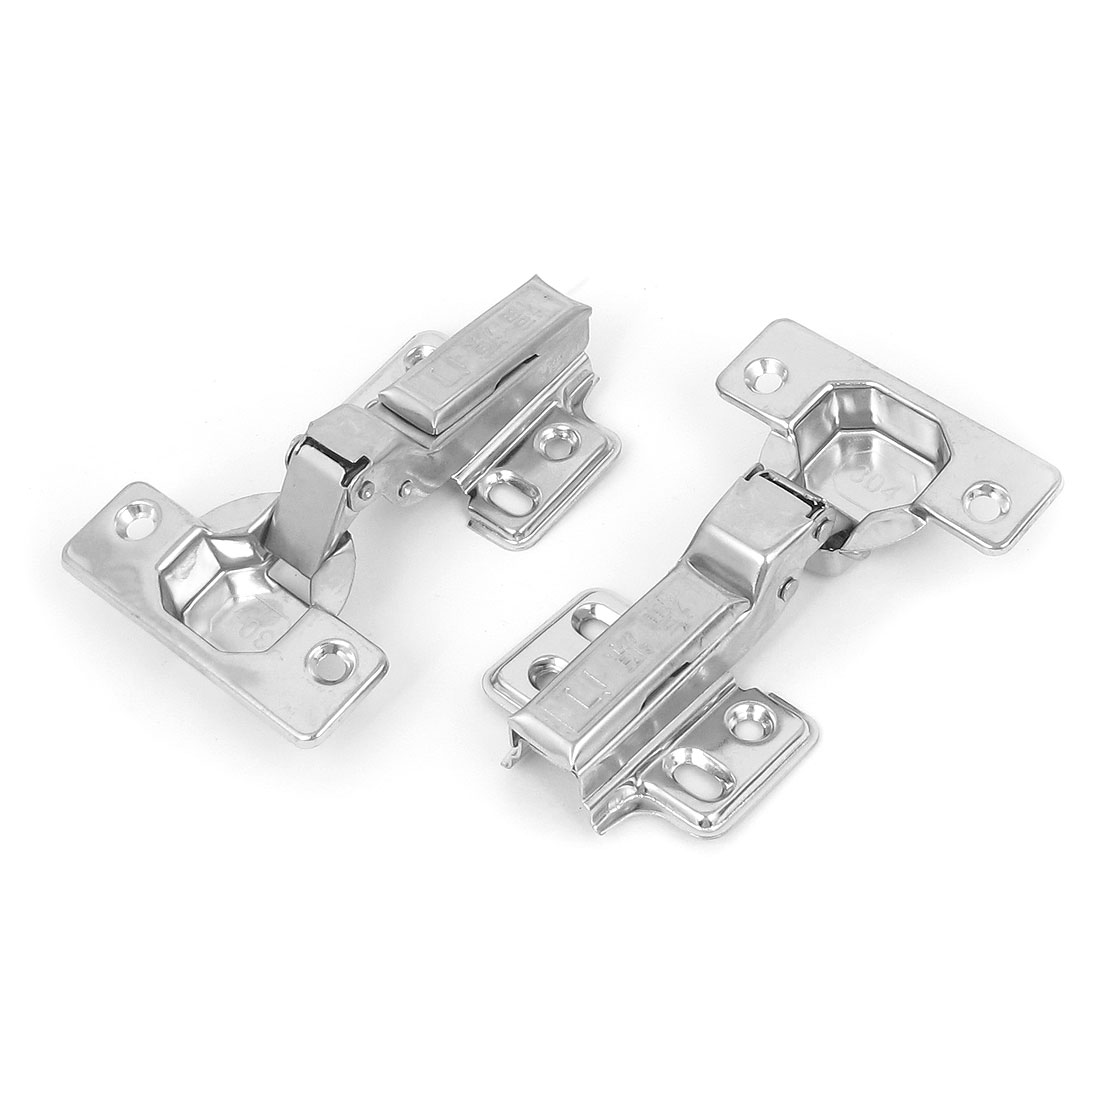 Cabinet Cupboard Stainless Steel Face Frame Concealed Self Closing Hinges 10pcs